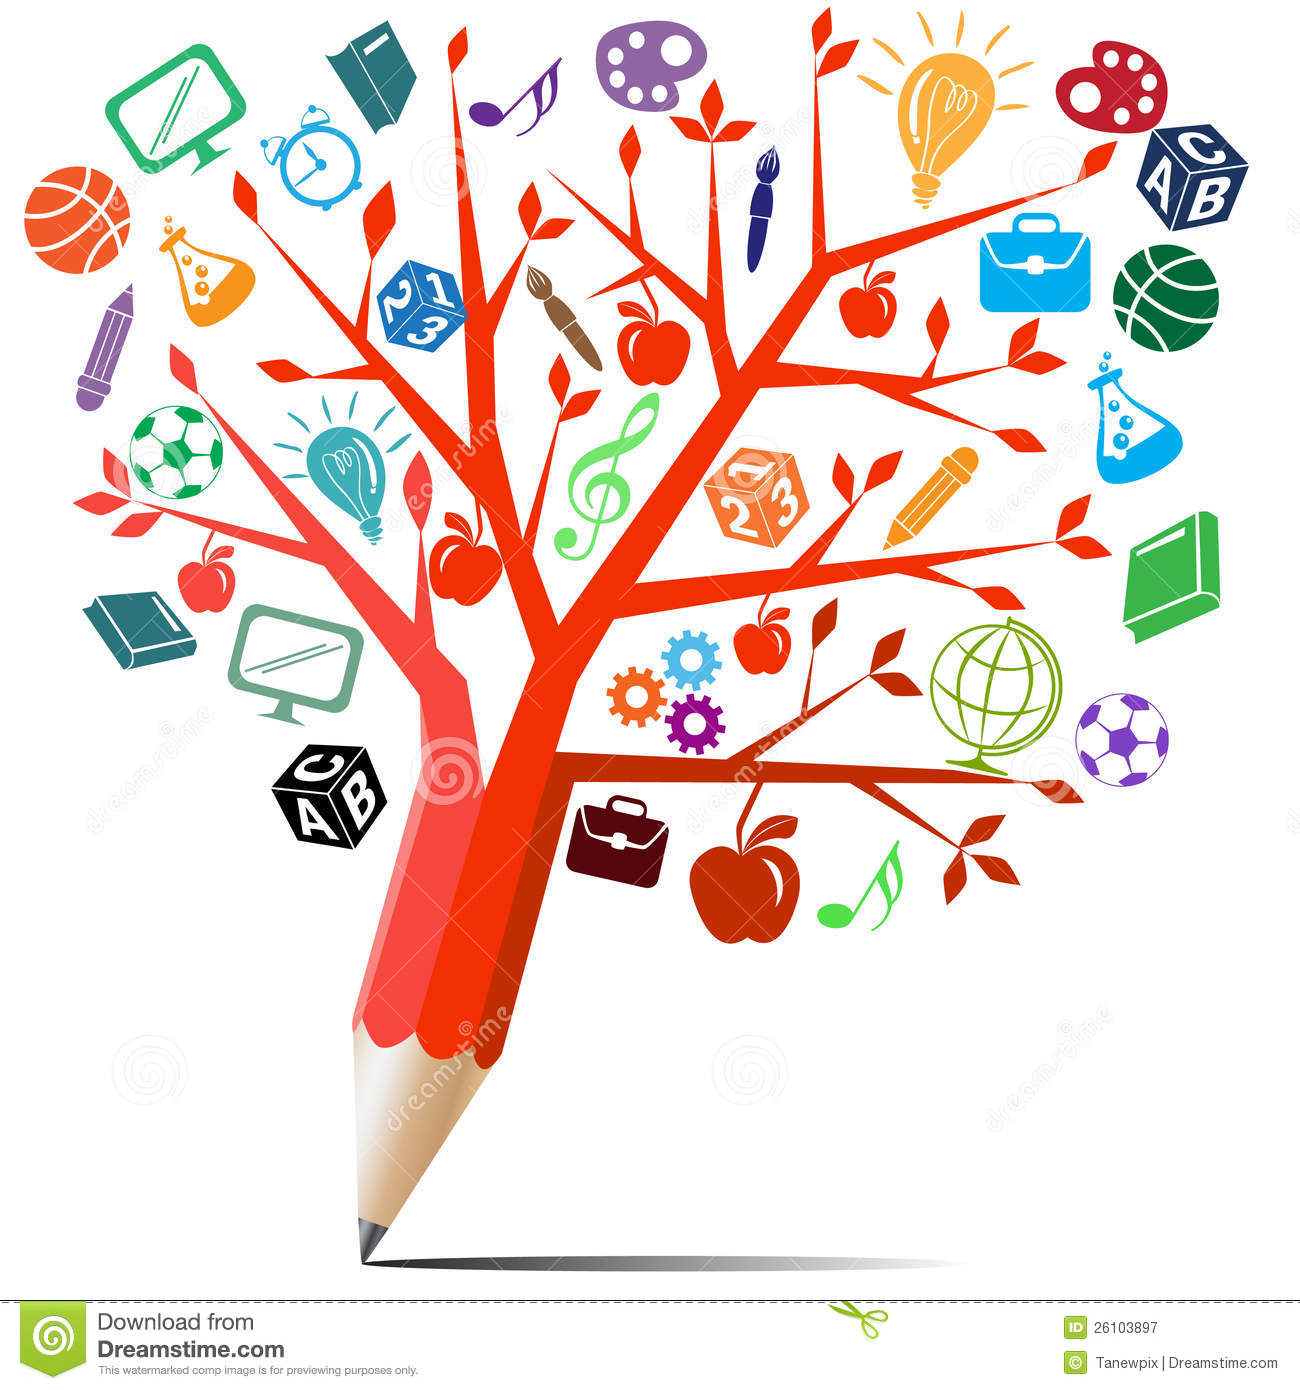 Red Tree Pencil With Symbols Royalty Free Stock